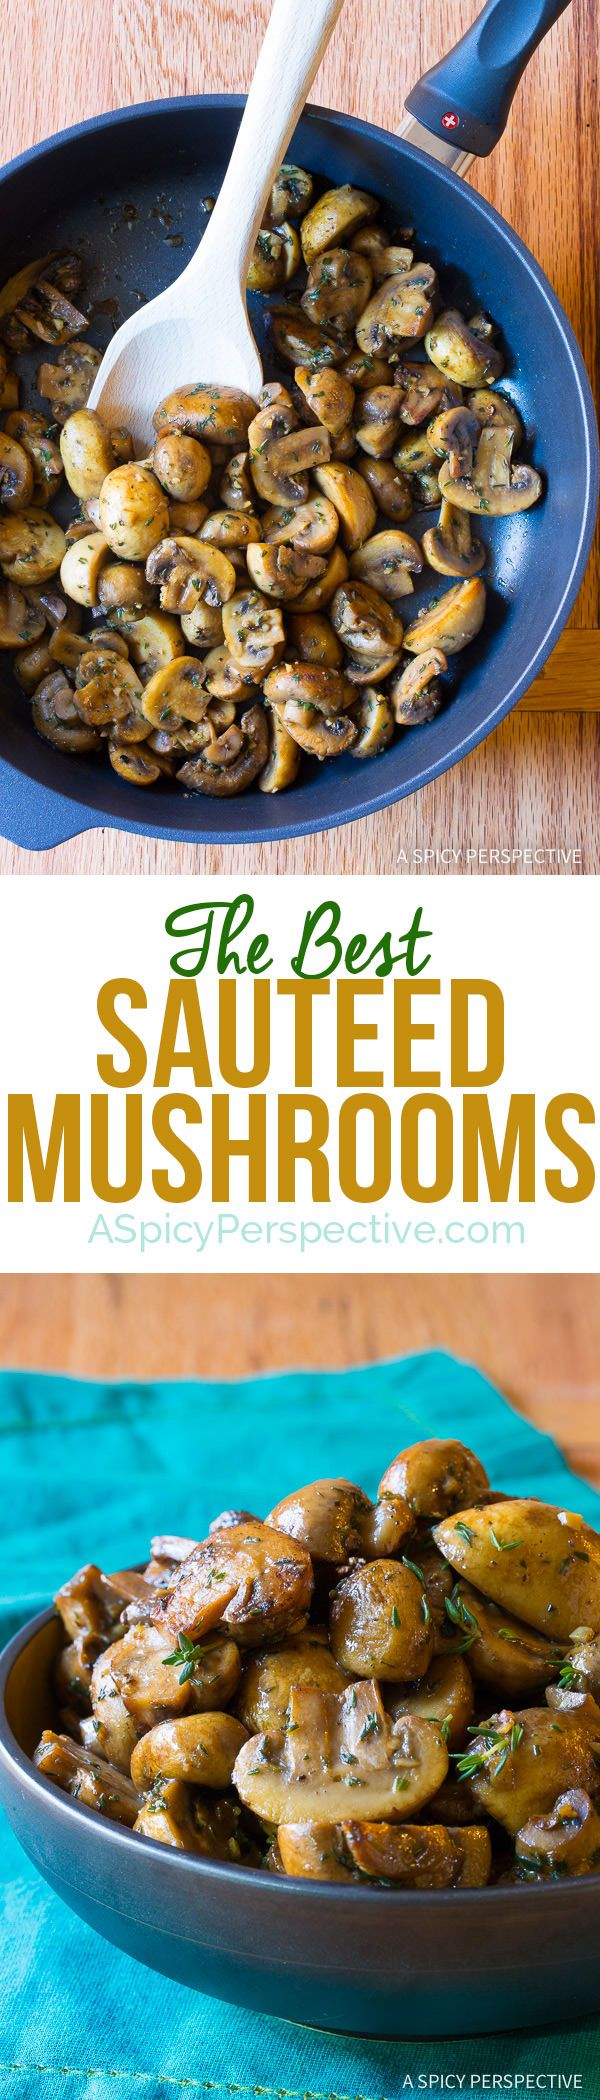 The BEST Sautéed Mushroom Recipe for topping steaks or risotto on ASpicyPerspective.com